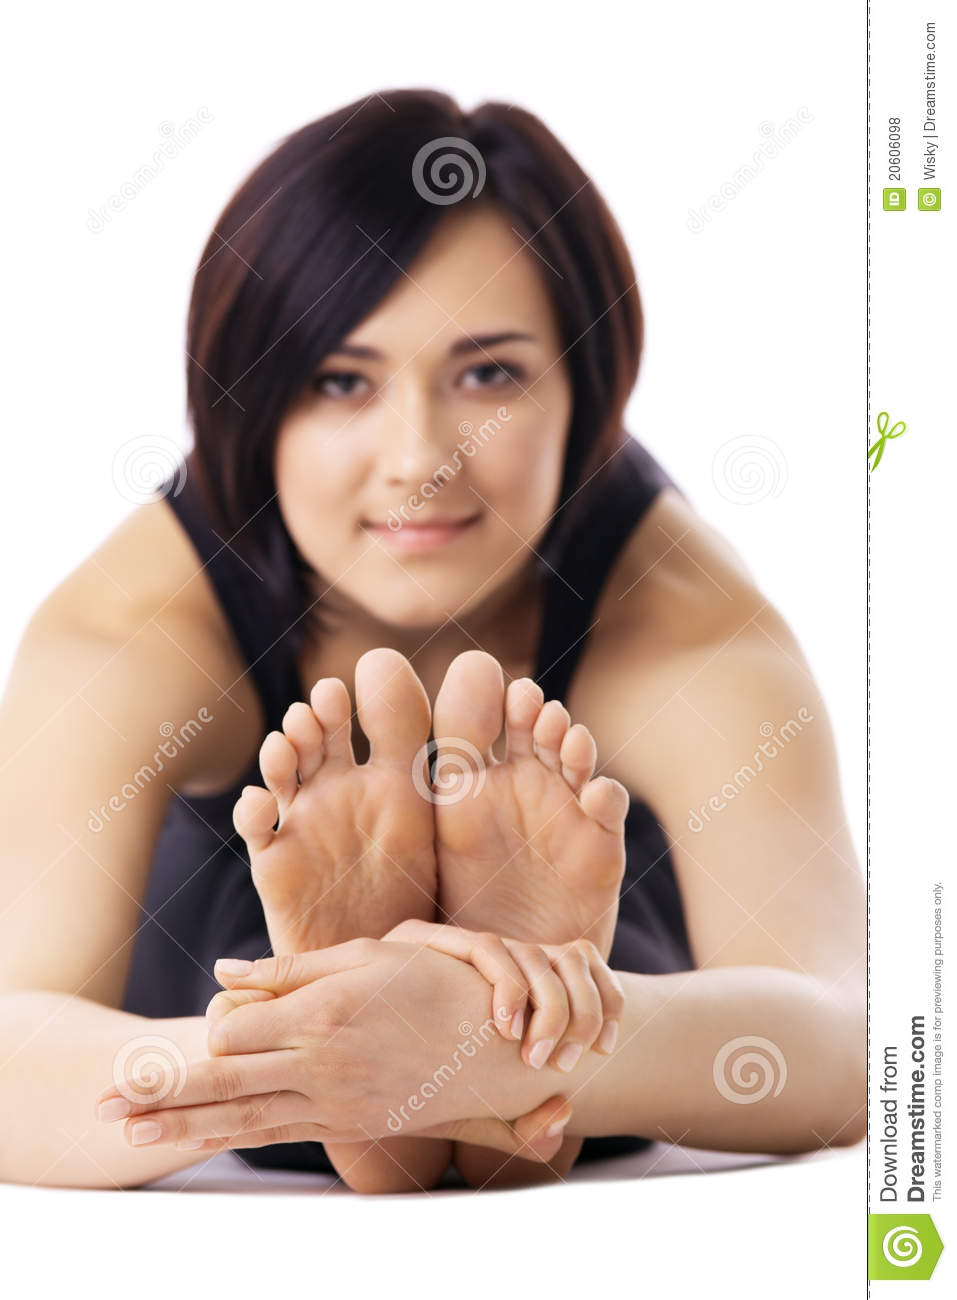 Woman Relaxed In Yoga Pose - Focus On Fingers Sign Royalty ...